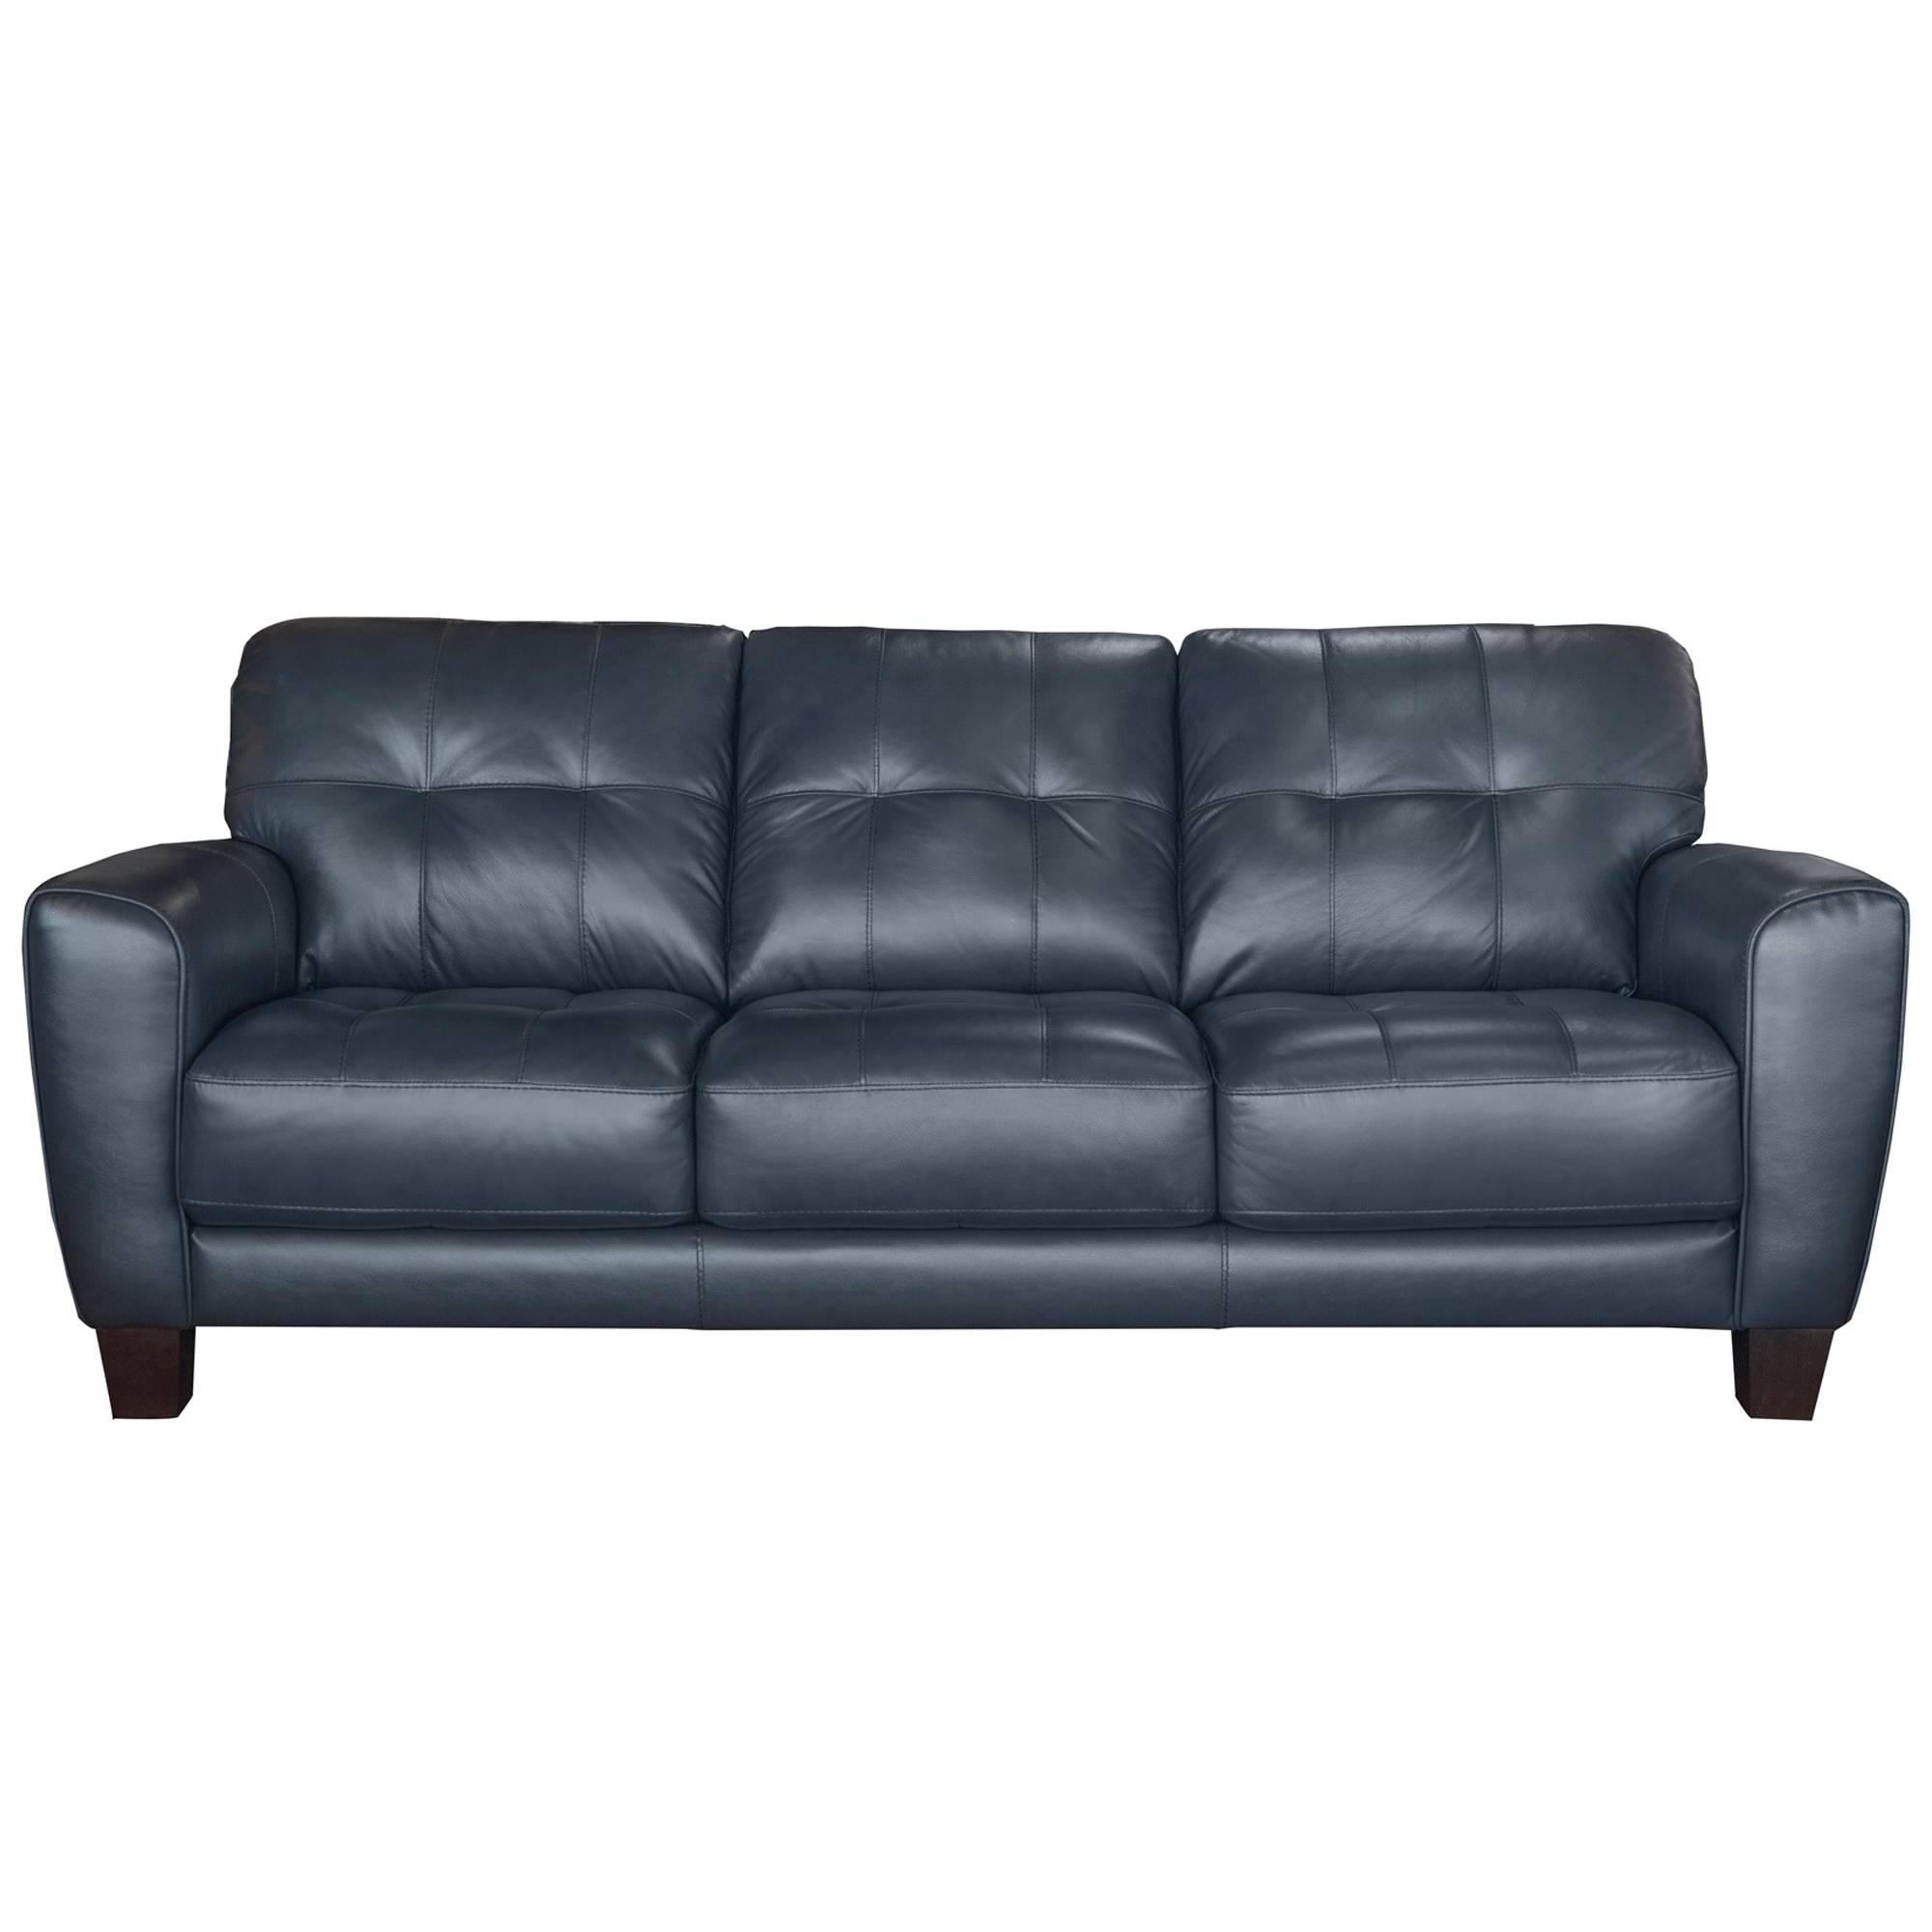 Modern Sofas | Living Room Sofas - Bernie & Phyl's Furniture with Grey Sofa Chairs (Image 21 of 30)